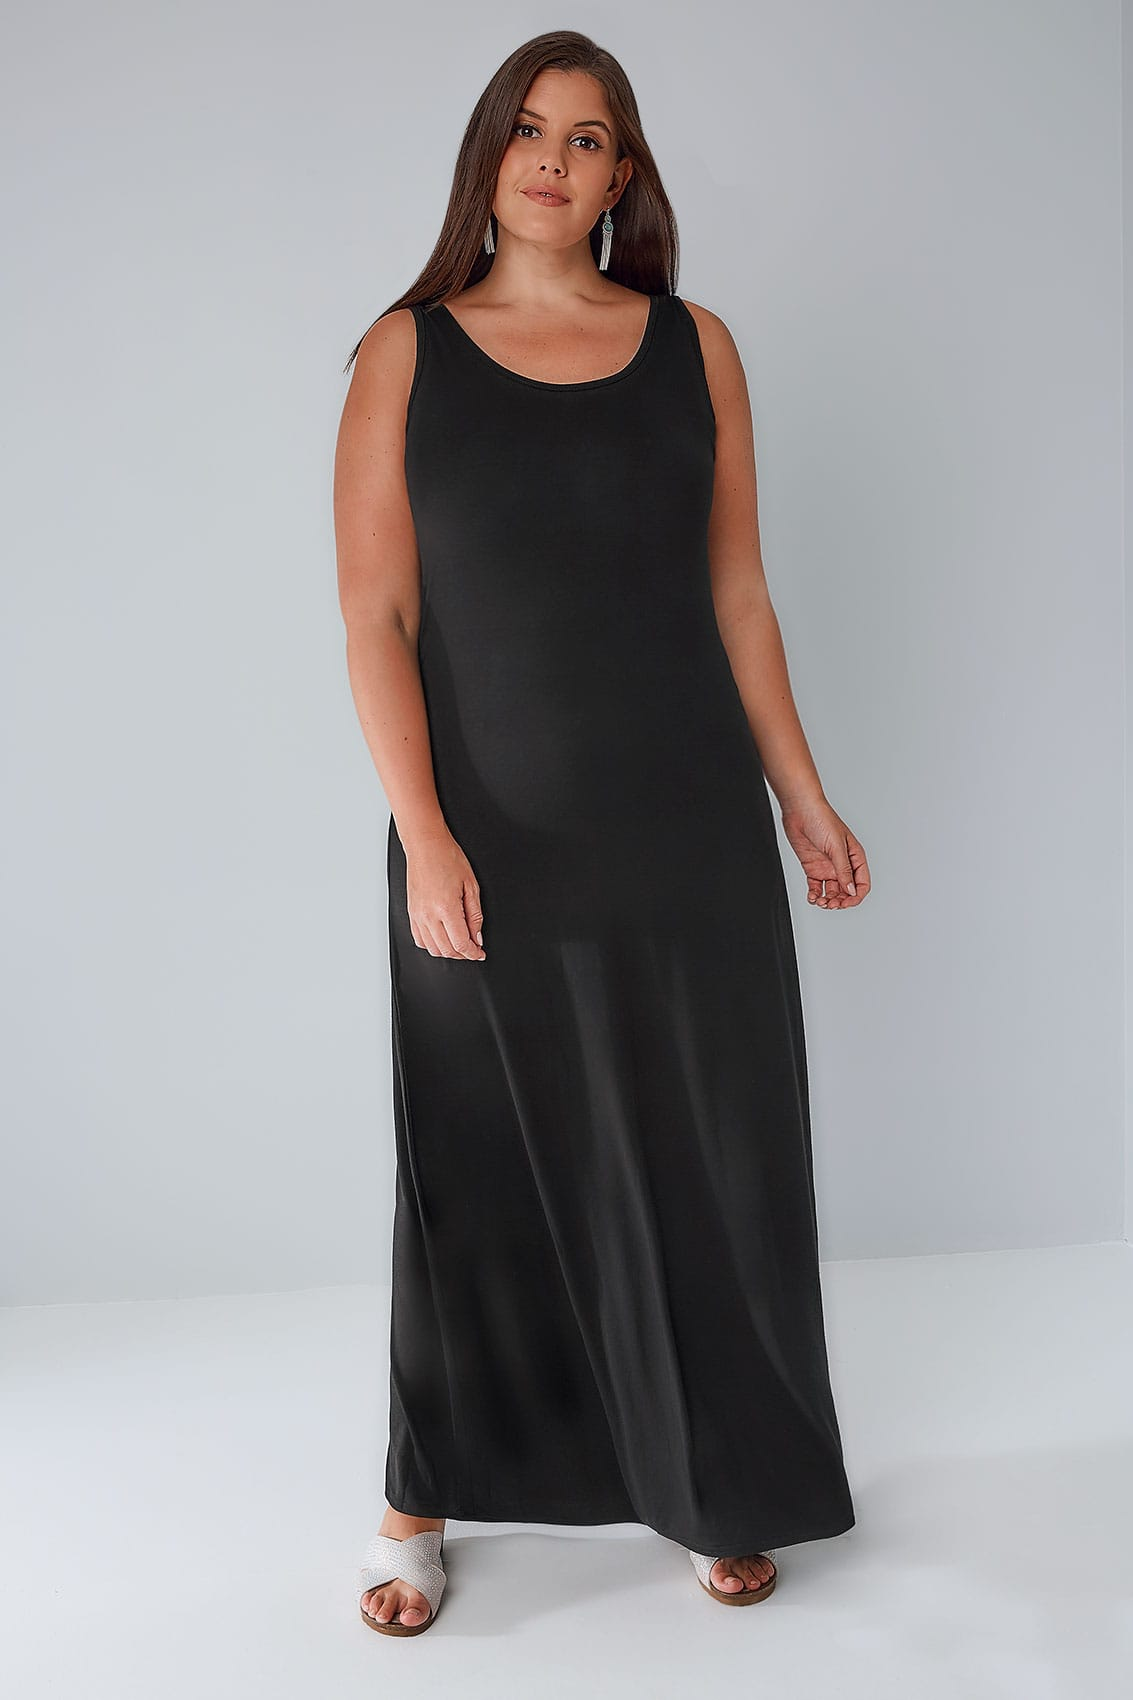 Enjoy free shipping and easy returns every day at Kohl's. Find great deals on Womens Maxi Sleeveless Dresses at Kohl's today!